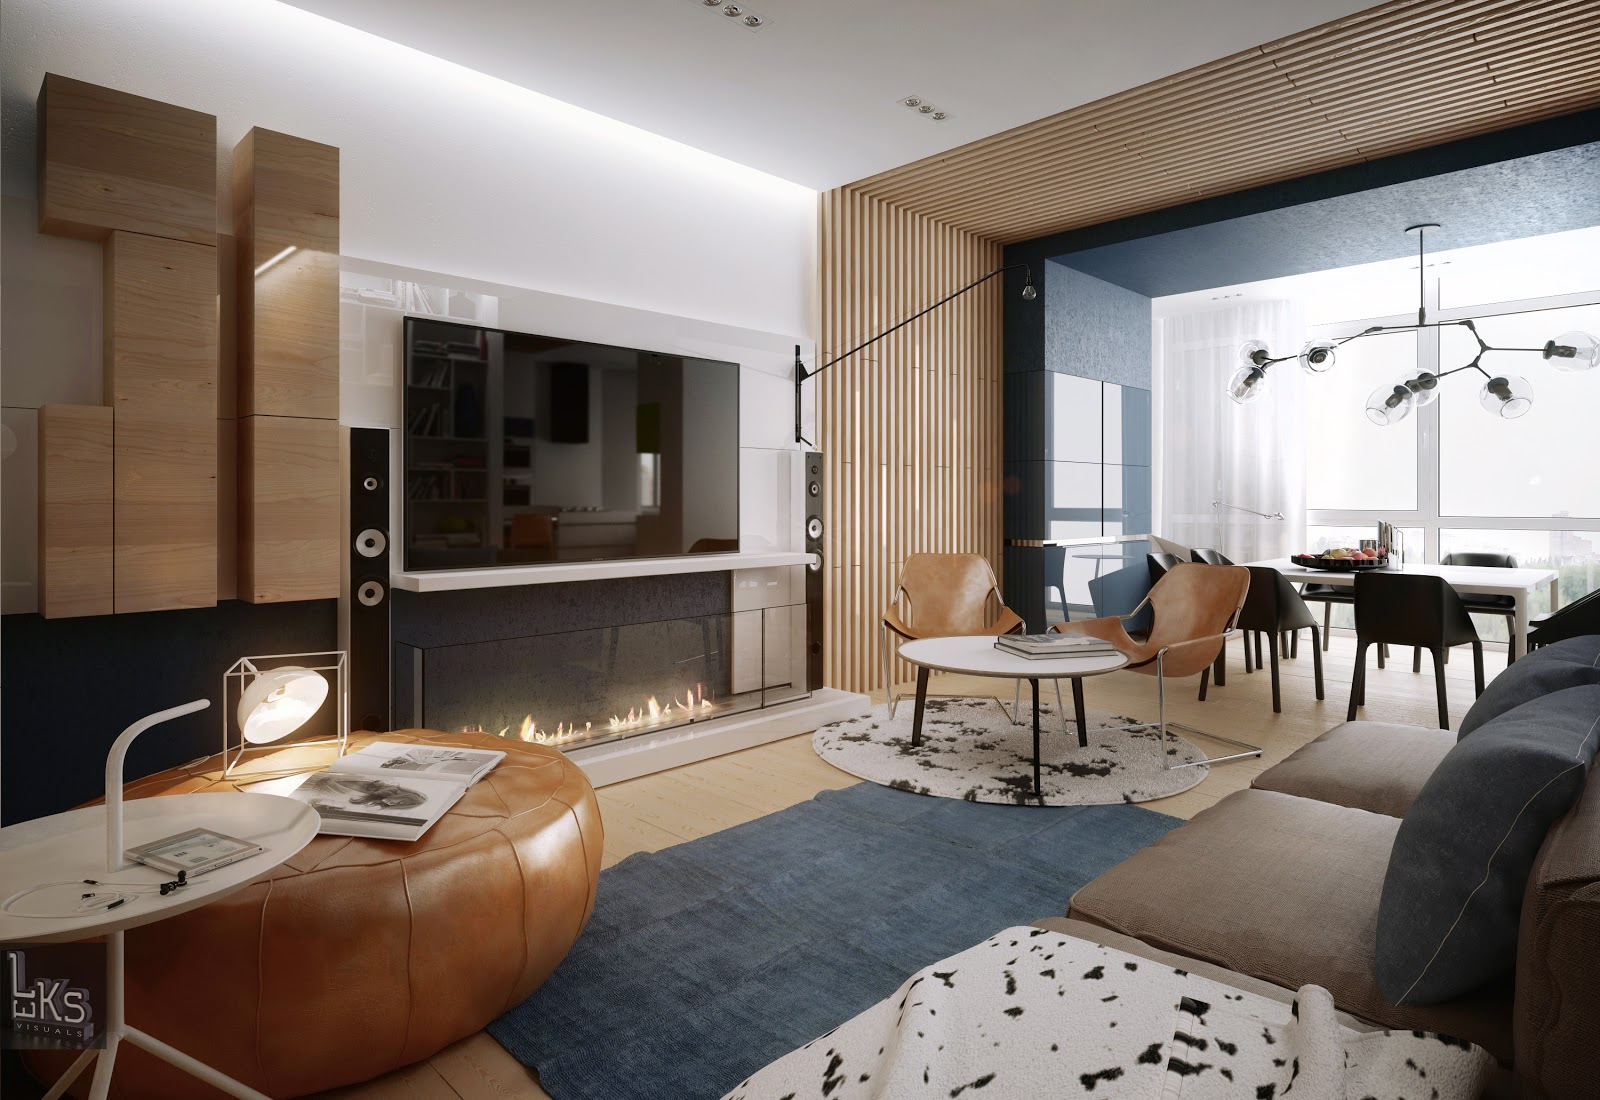 Ultra modern apartment interior design ideas Modern apartment interior design